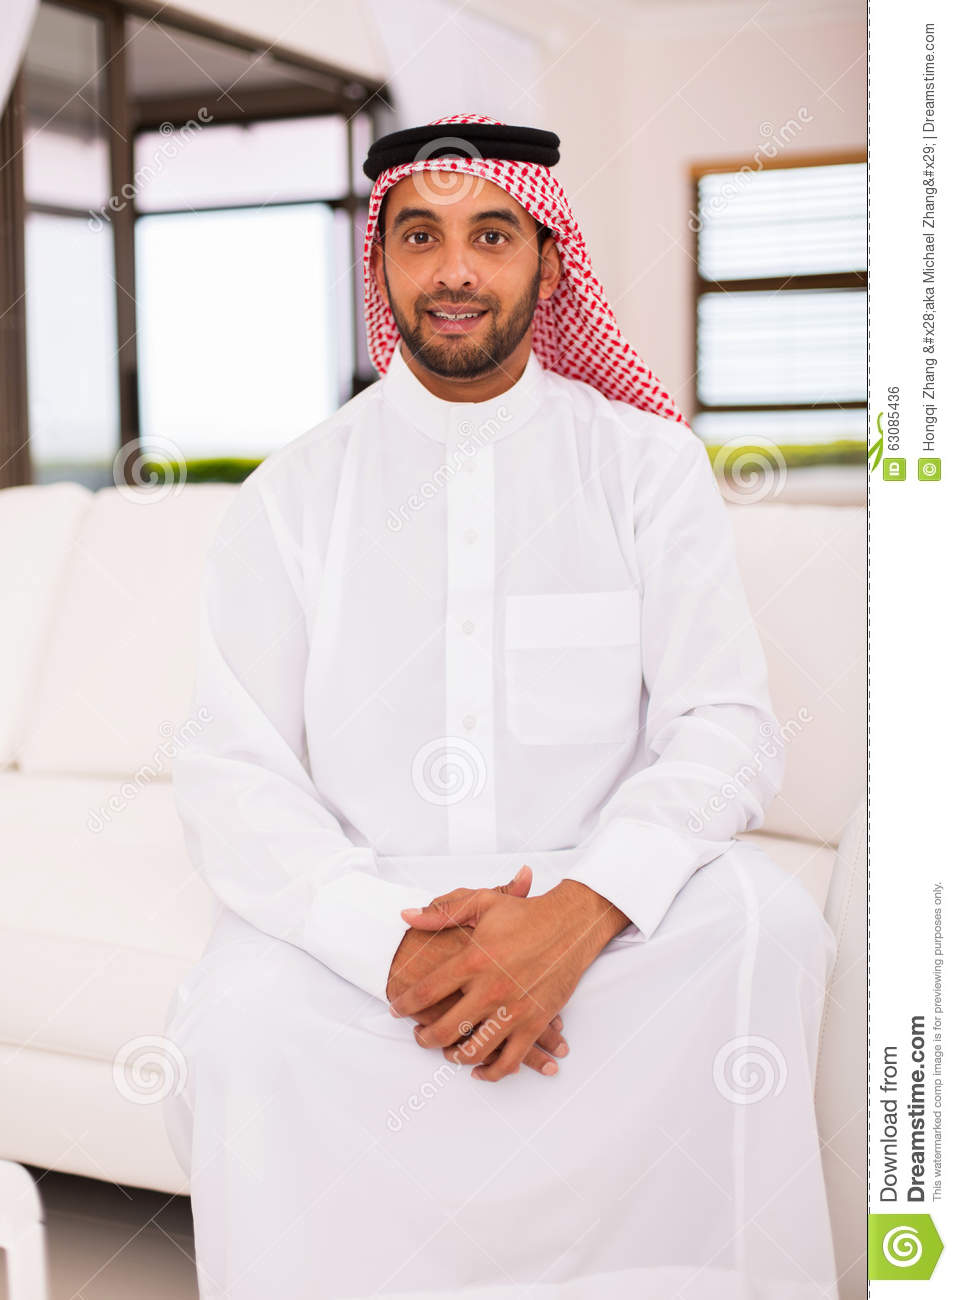 Download Homme du Moyen-Orient photo stock. Image du regarder - 63085436